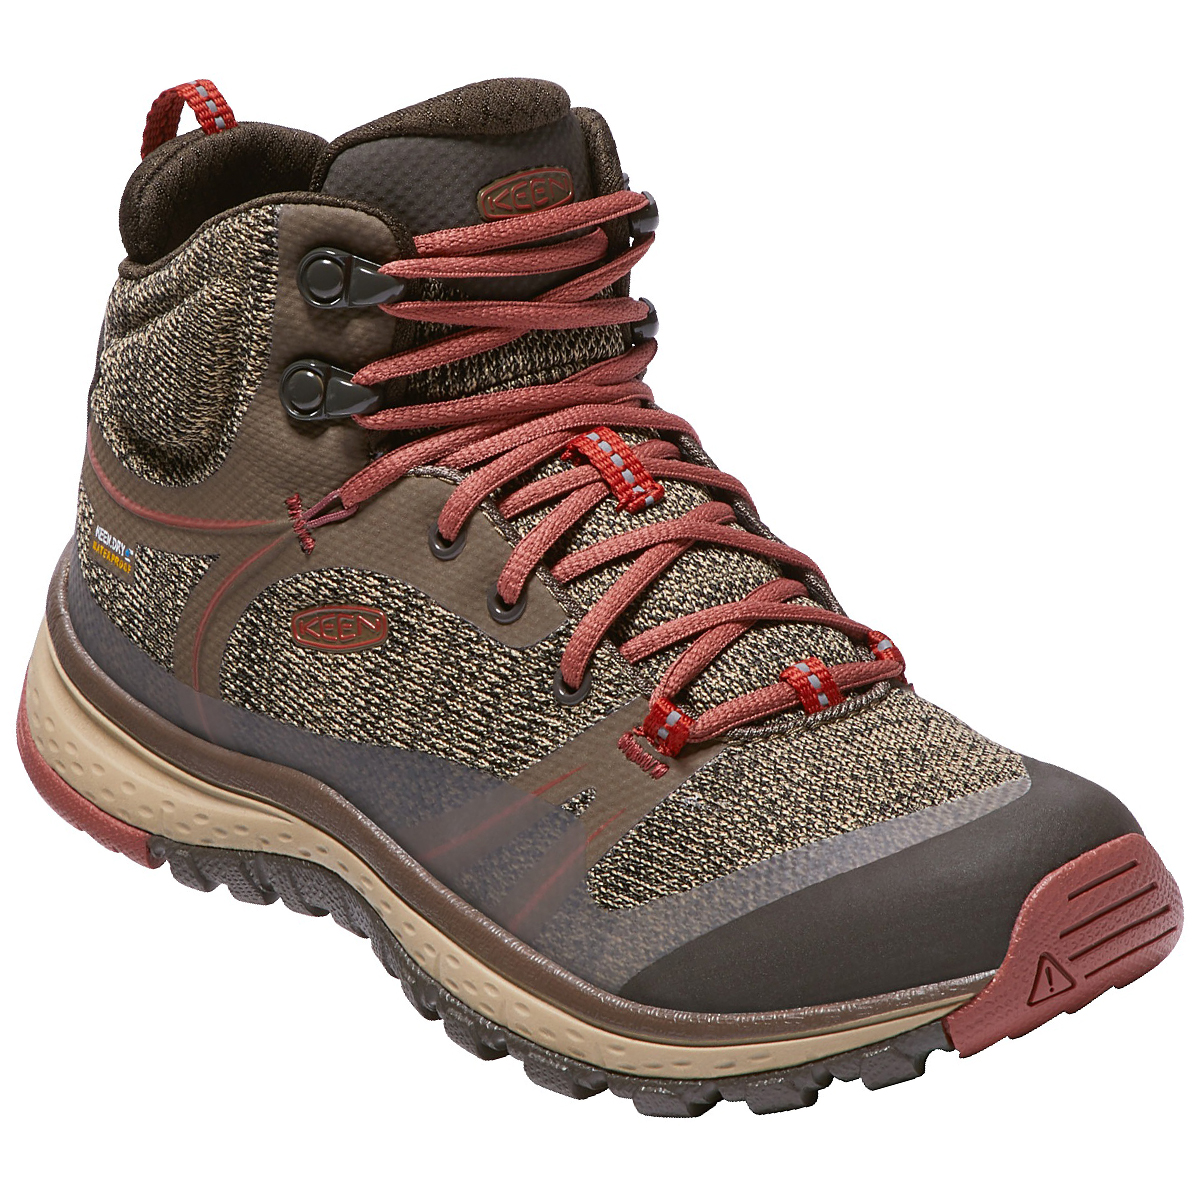 Keen Women's Terradora Waterproof Mid Hiking Boots - Brown, 7.5